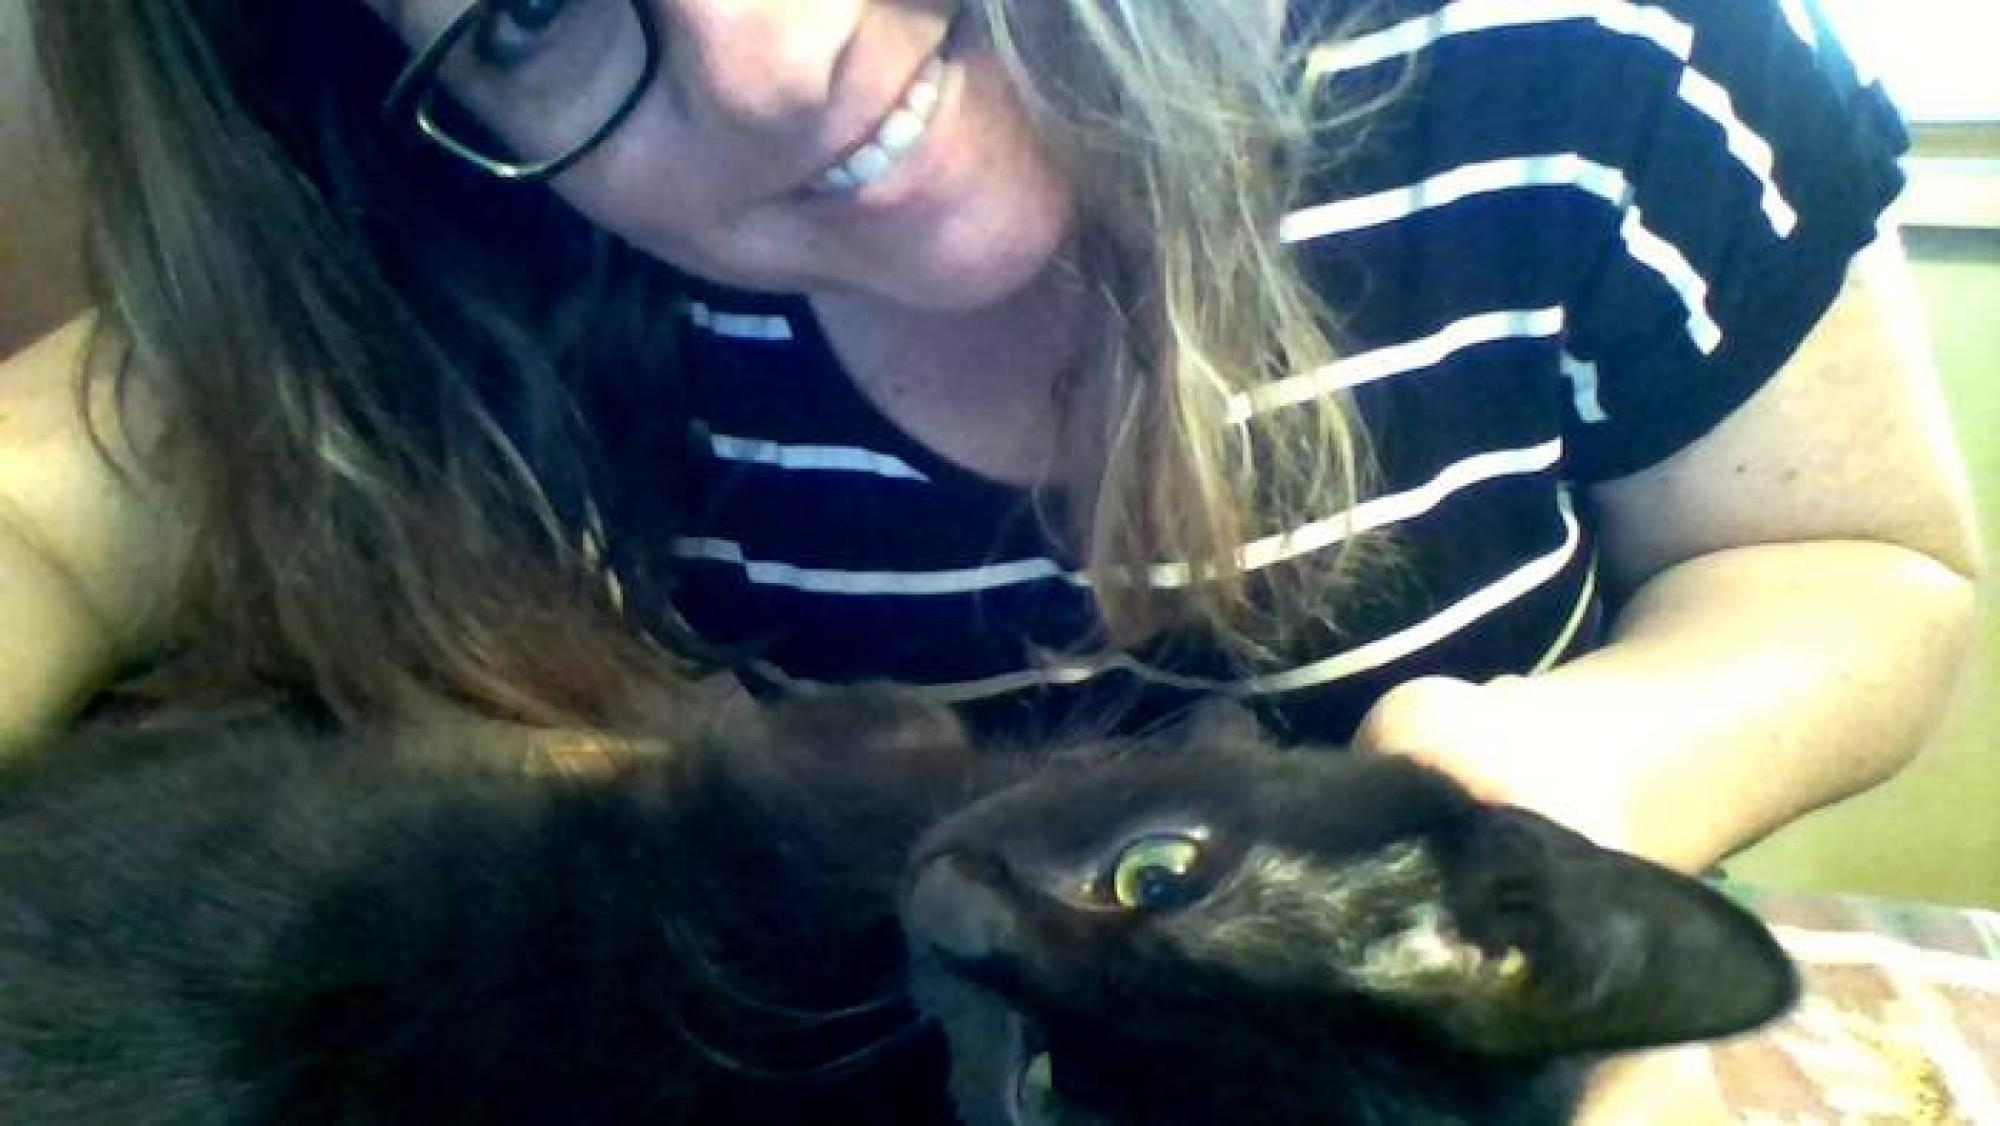 Here's me and my cat, Snuggles, while he was lying on my keyboard. – Heather M. Moore, coordinator for career engagement in the College of Engineering